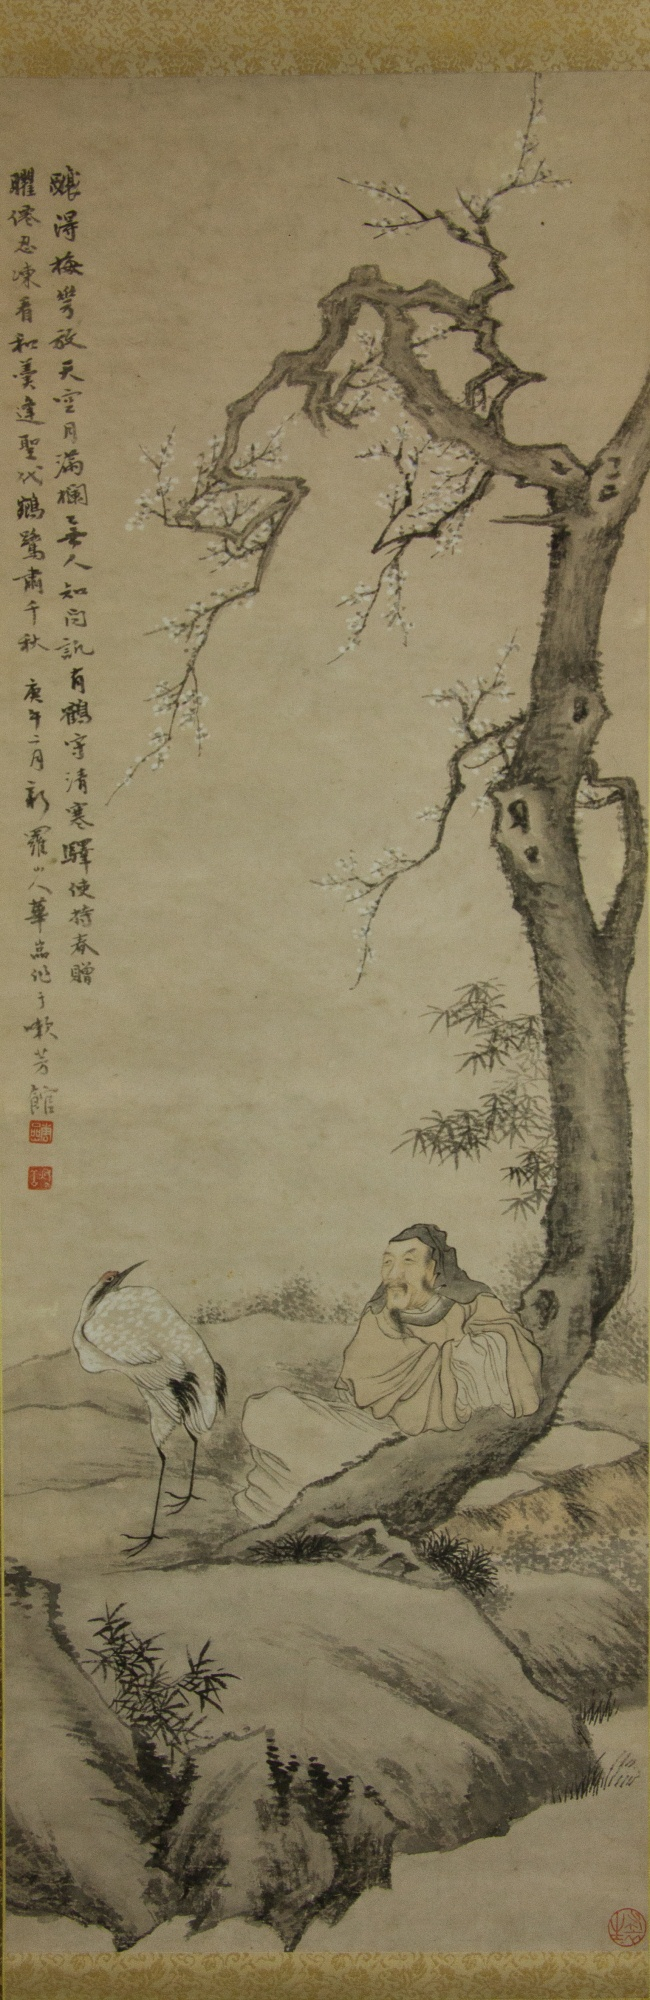 Chinese Watercolour Man under Tree Painting on Pap